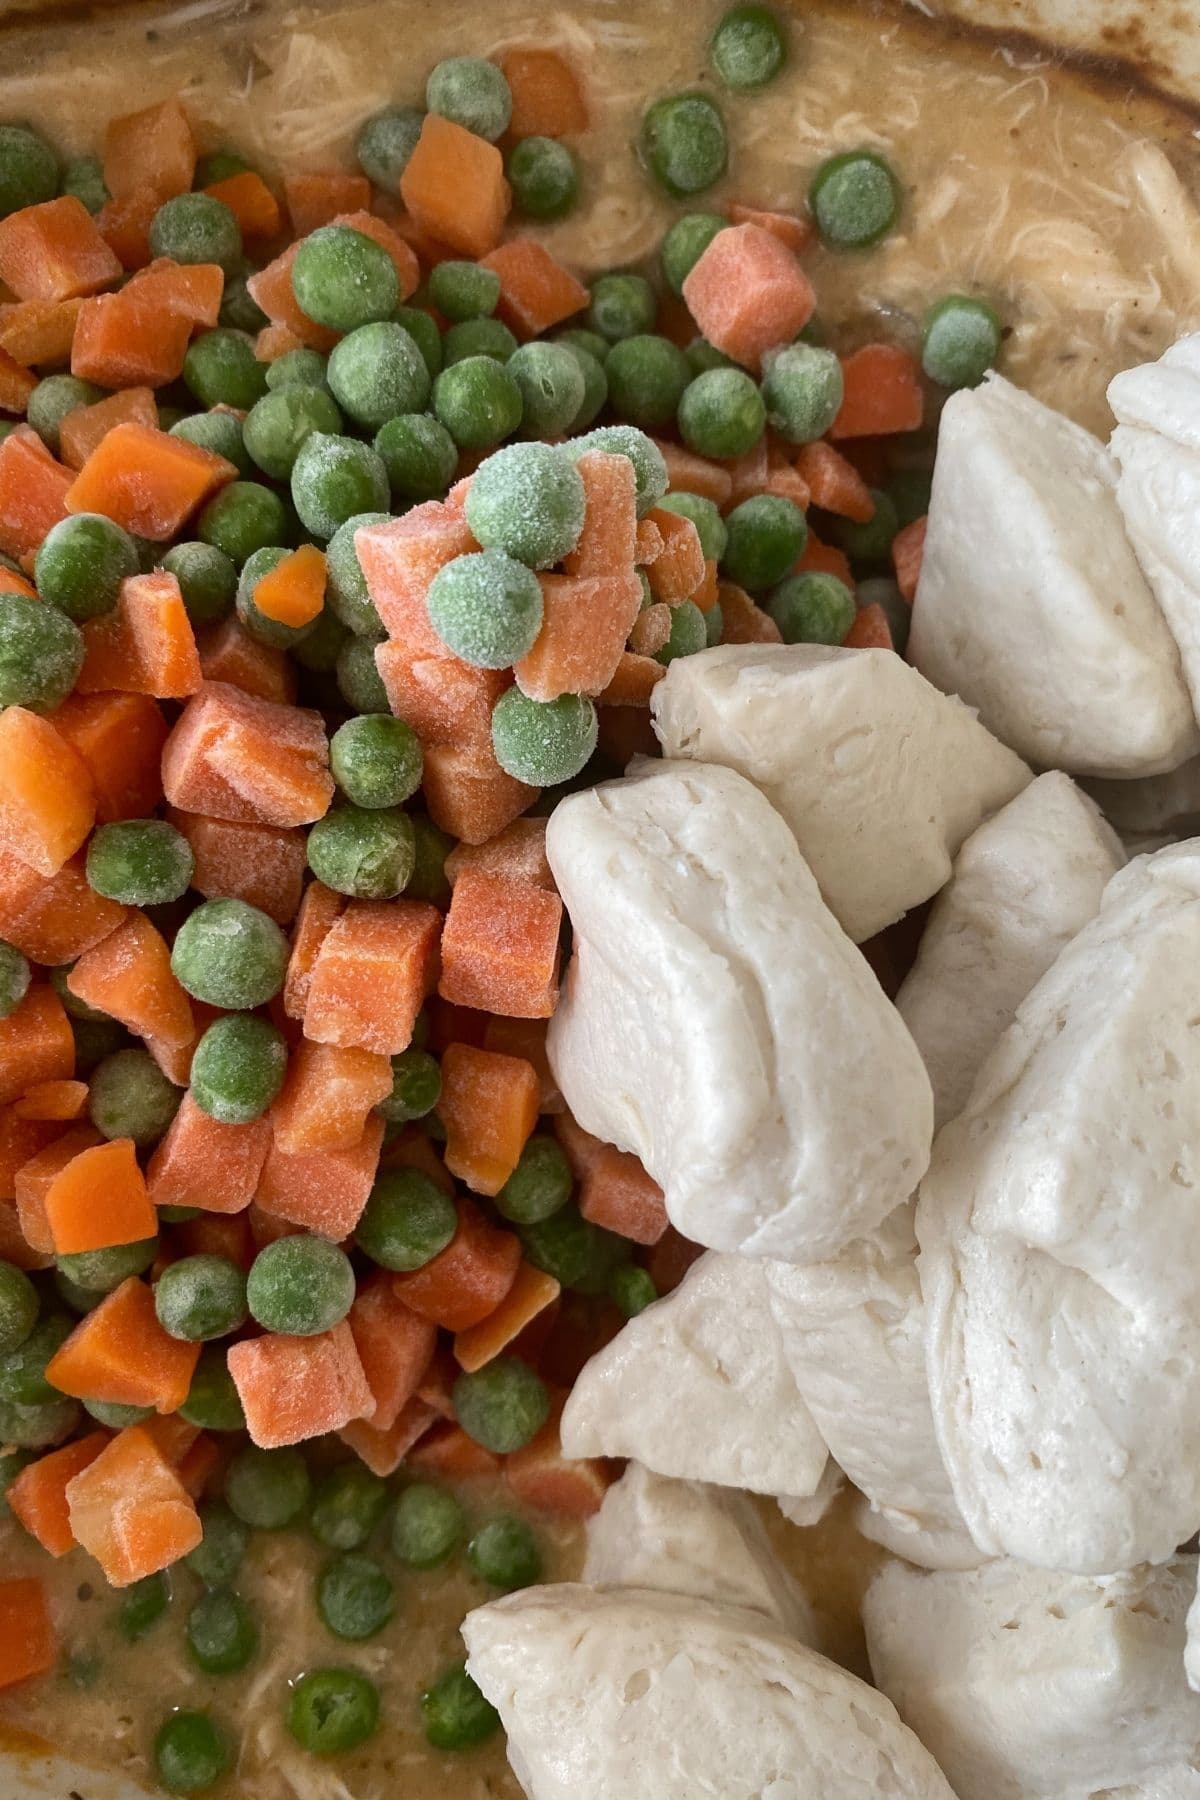 Peas and carrots on top of soup next to raw biscuits